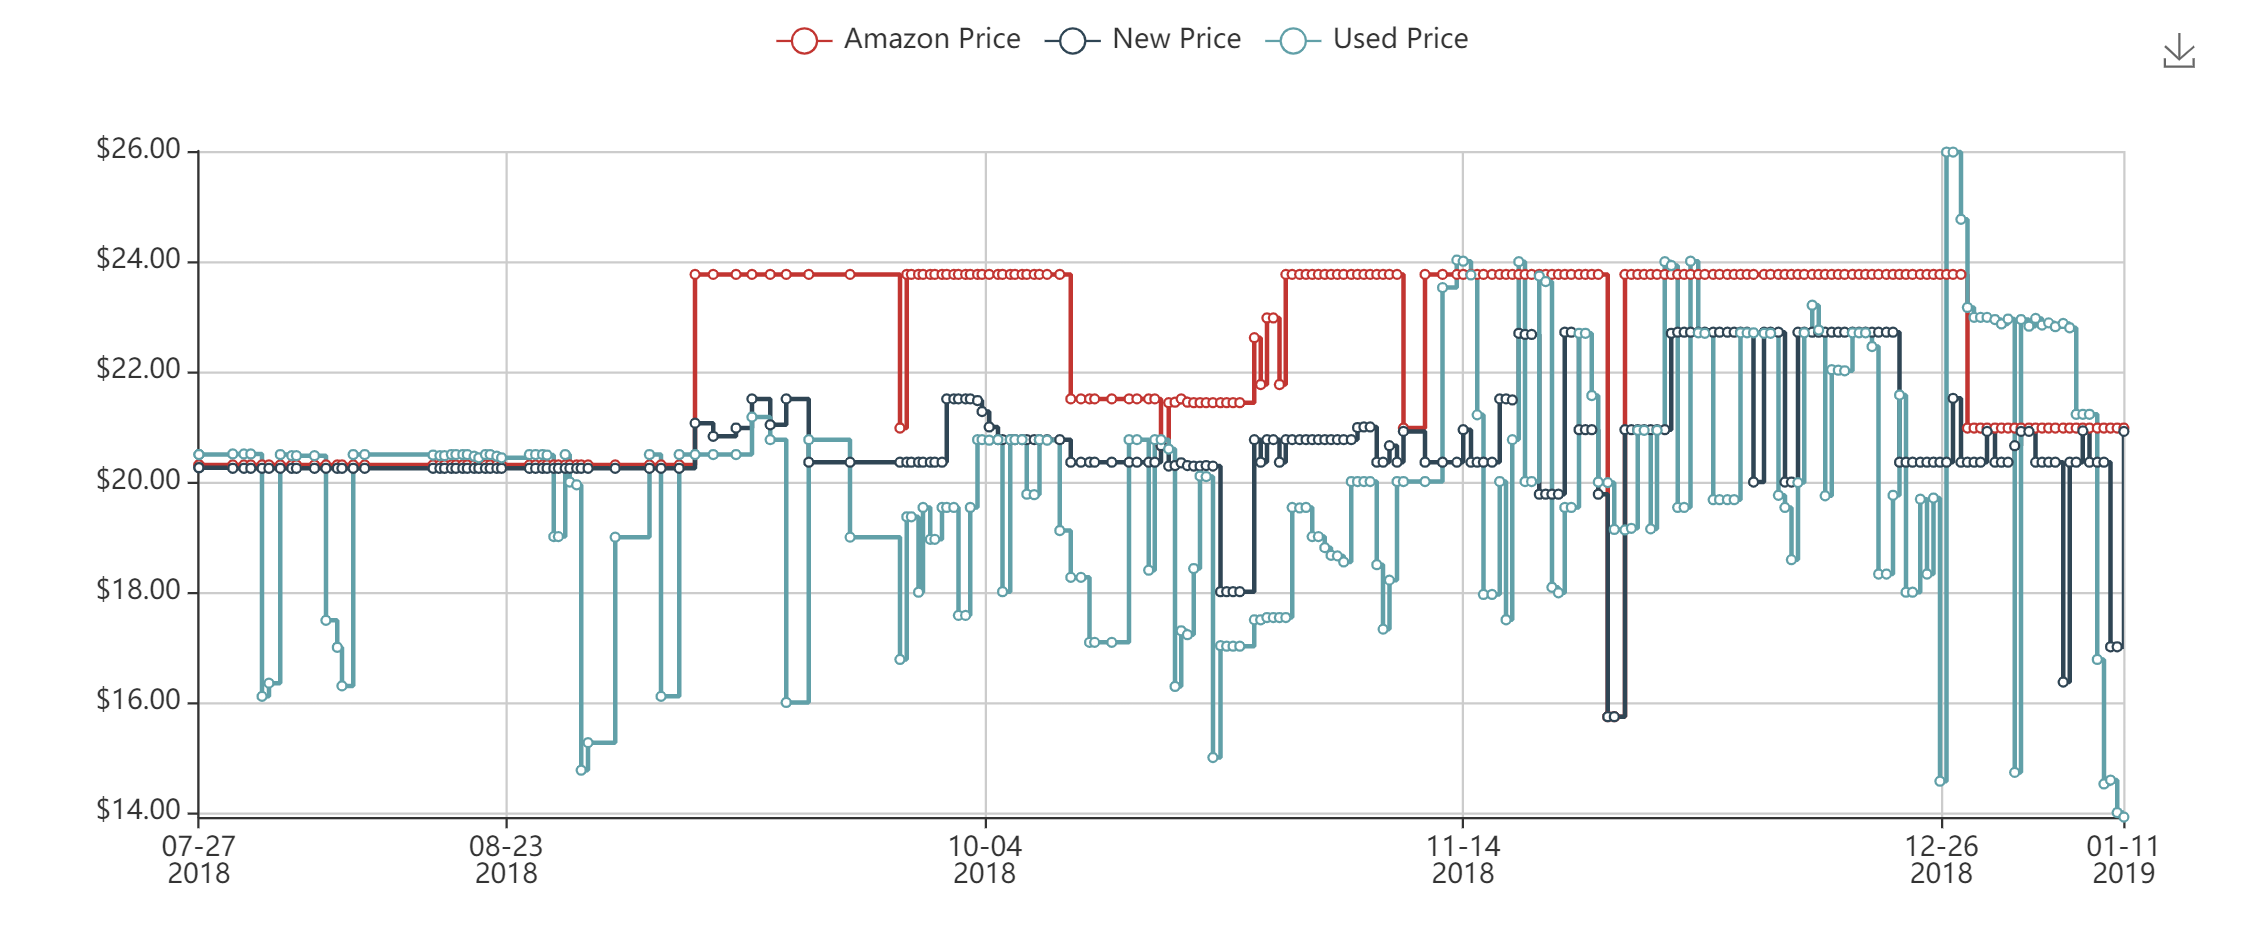 Historical prices for Ryan's book 'Simply Keto'